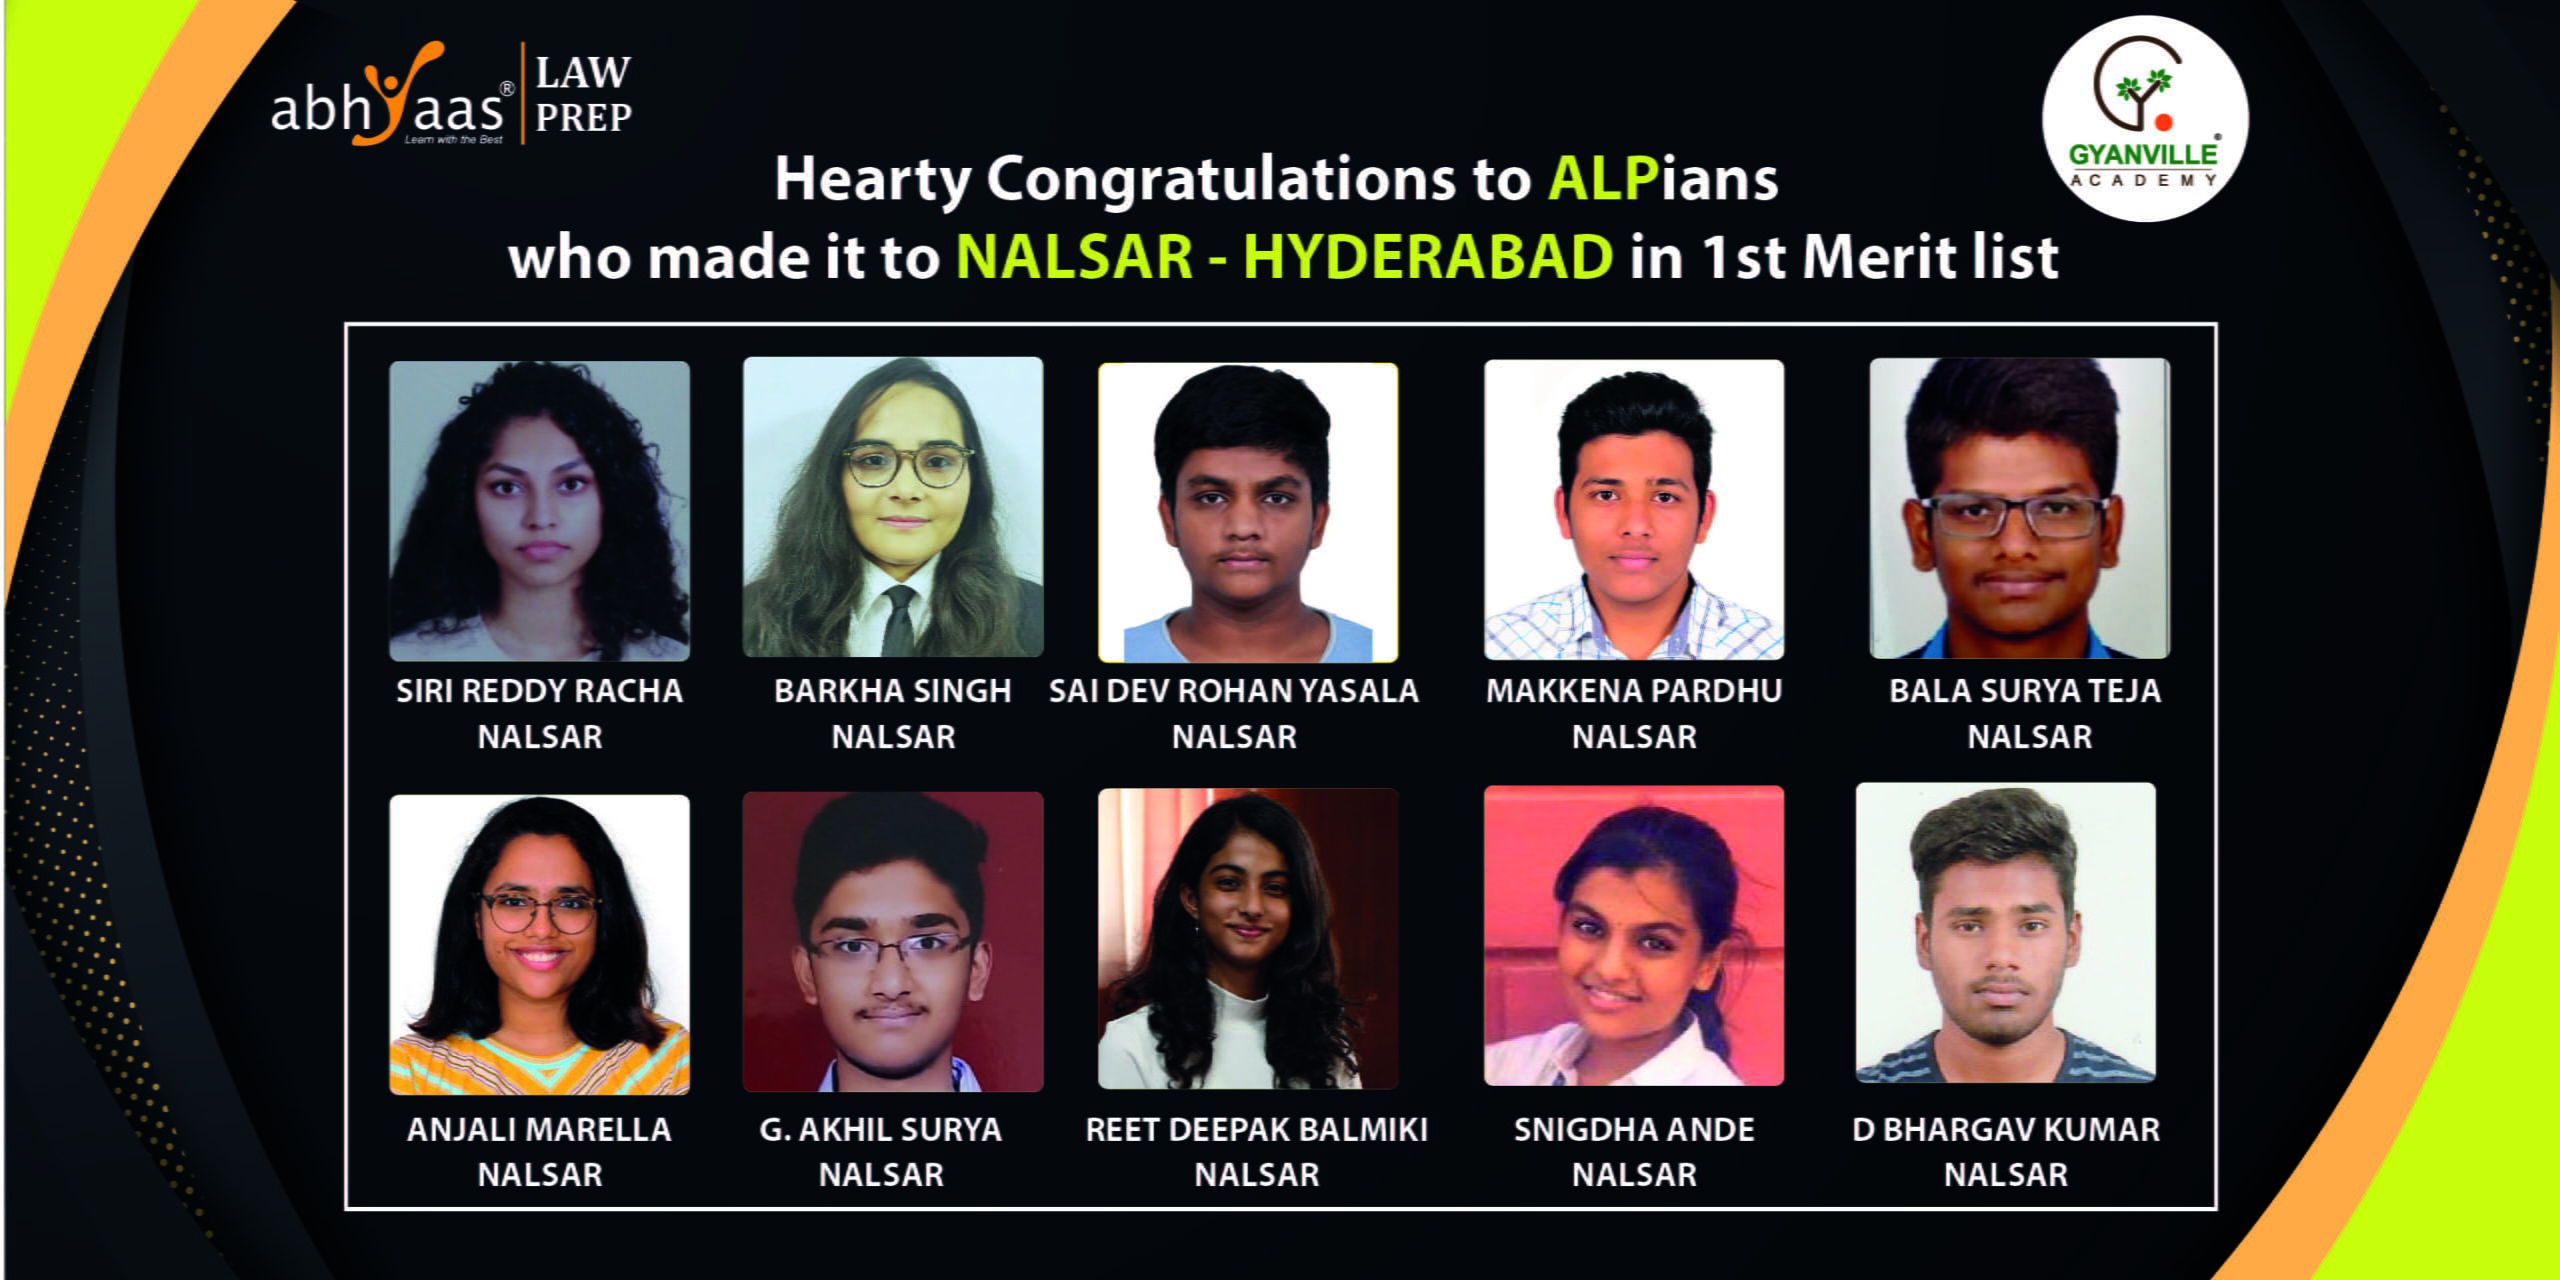 ALPians Who Made it to NALSAR